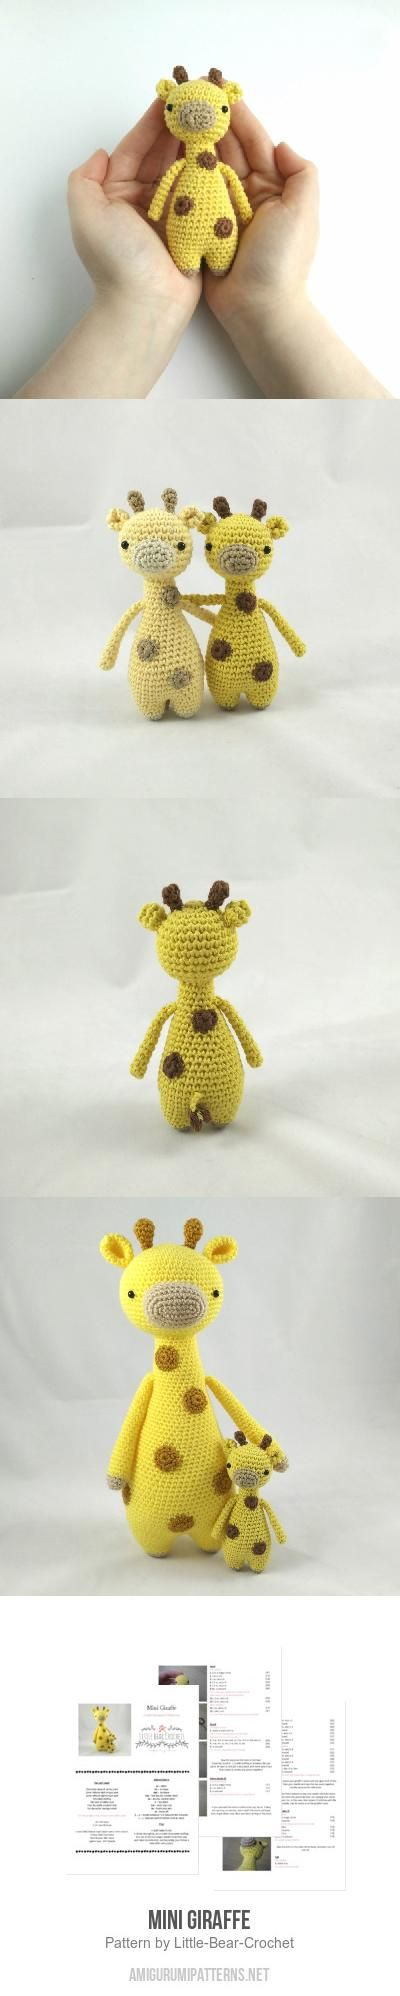 Mini Giraffe amigurumi pattern by Little Bear Crochet | Jirafa ...